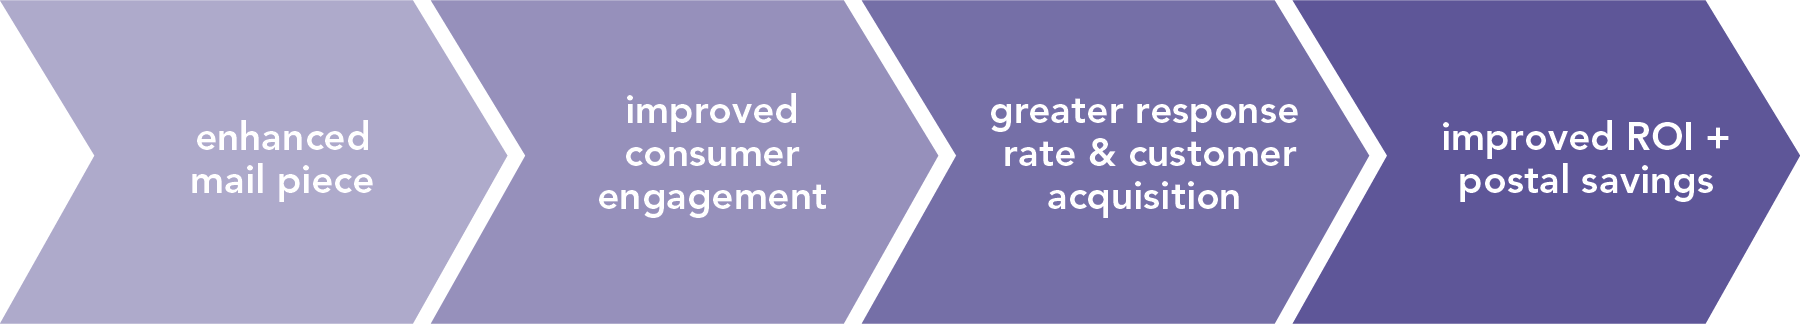 Enhanced mail piece leads to improved consumer engagement leads to greater response rate & customer acquisition leads to improved ROI and postal savings